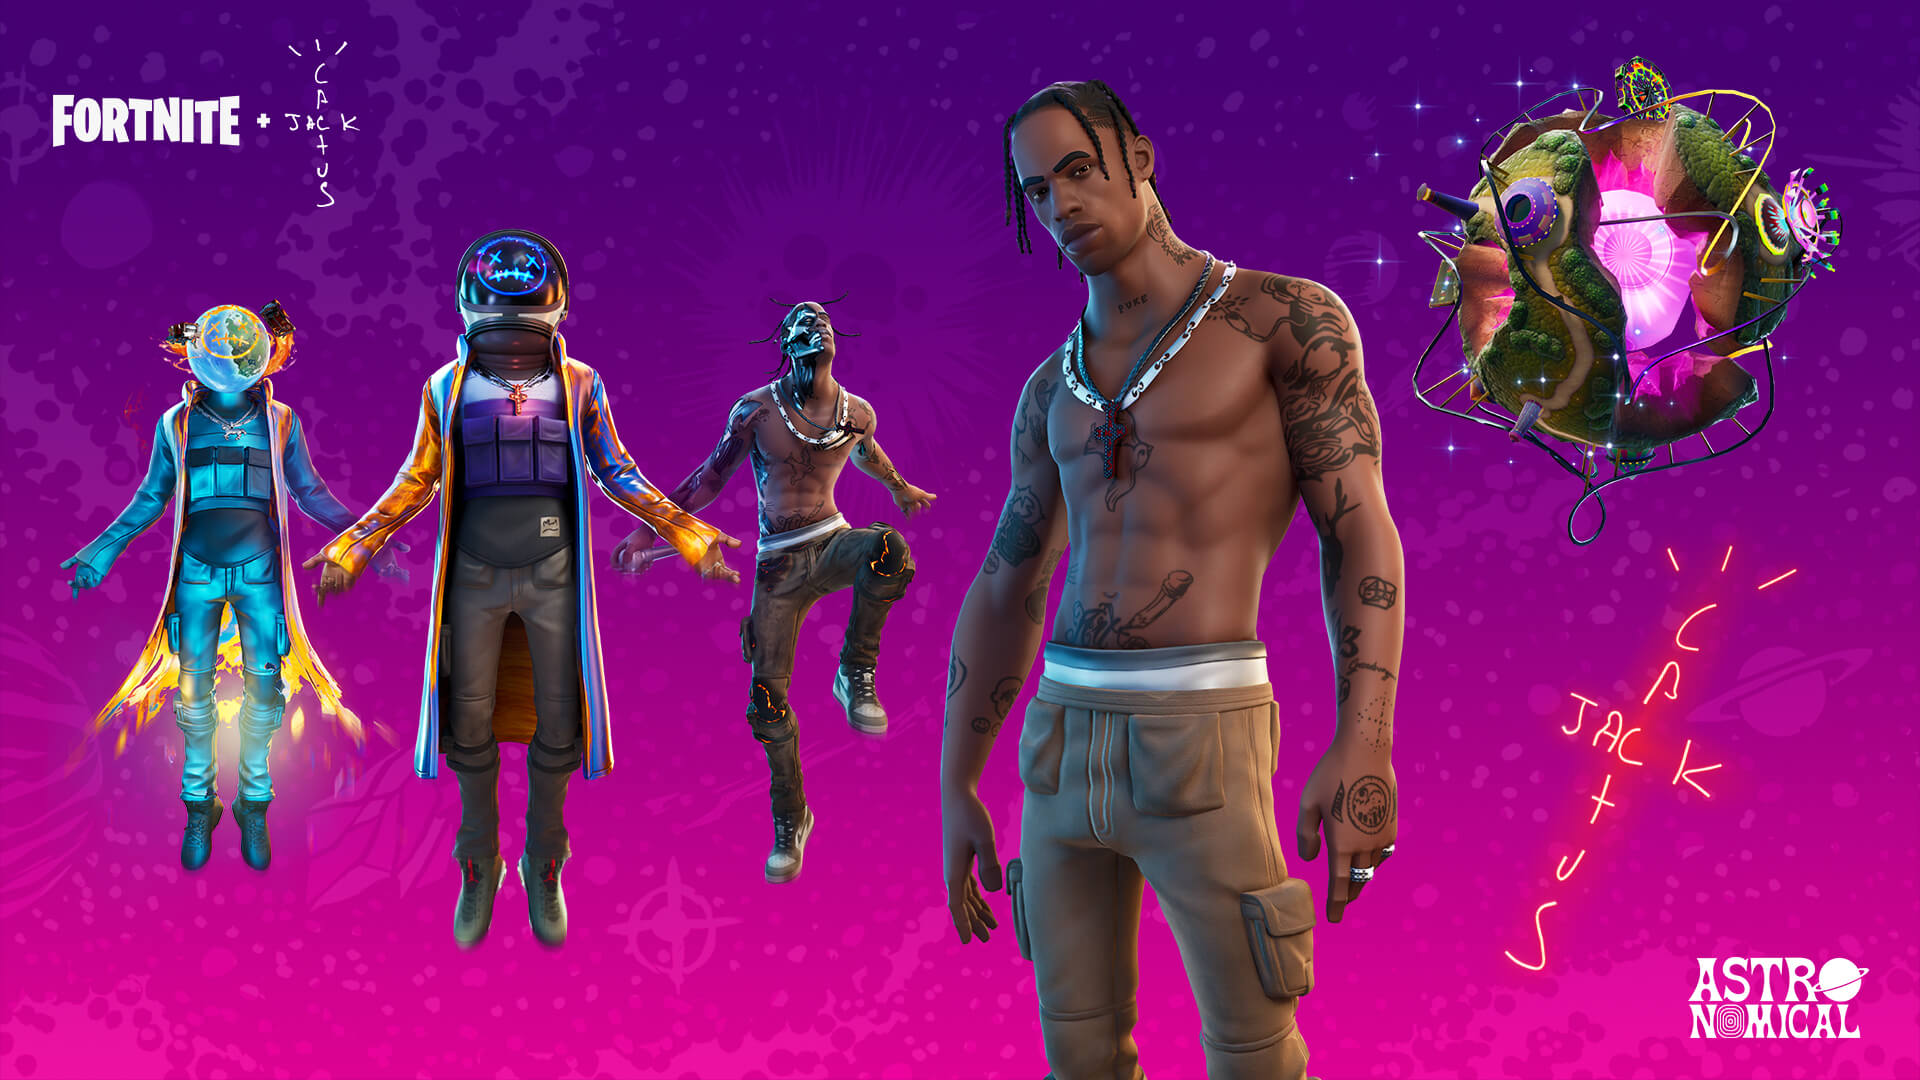 Travis Scott's Astronomical 'Fortnite' Sets All-Time Record, Gamers React